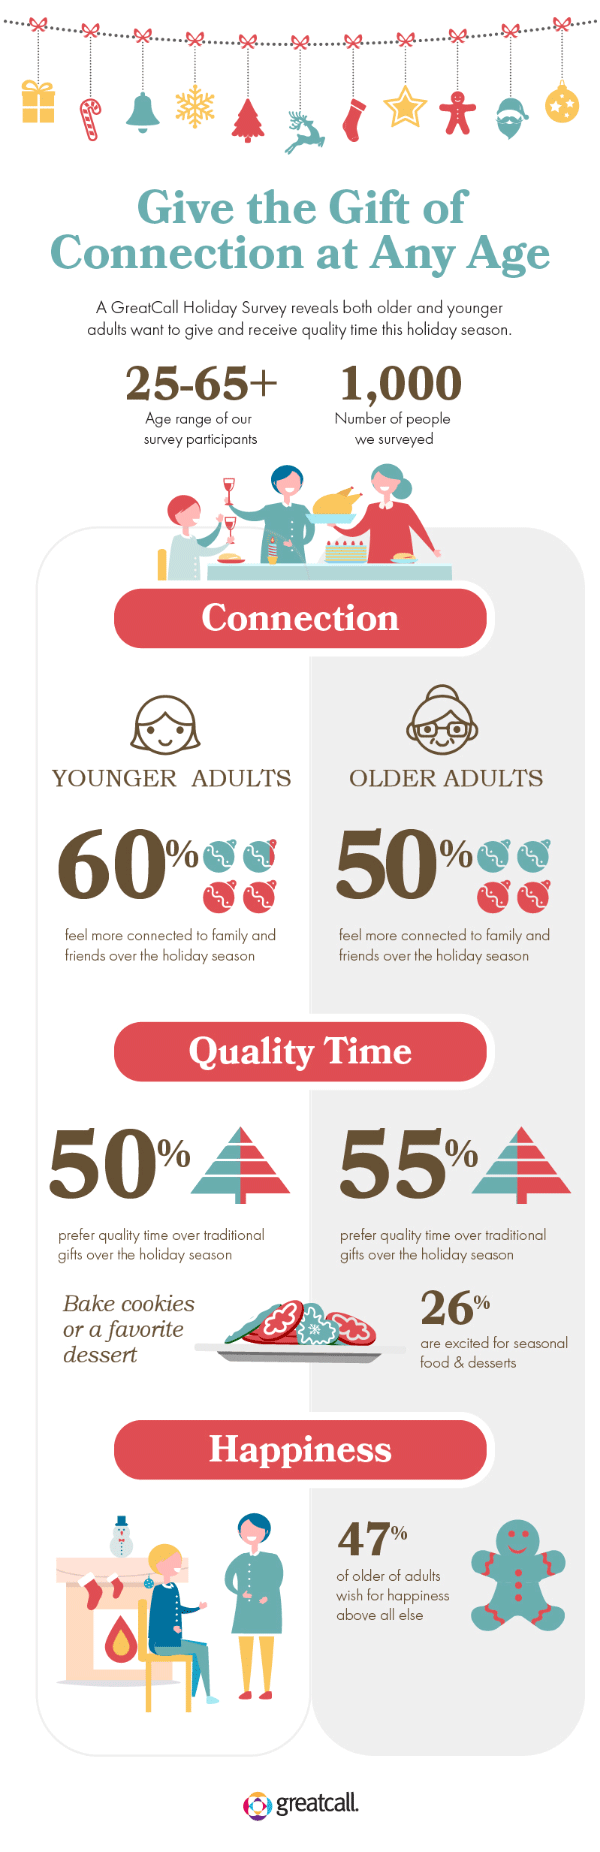 Infographic about the benefits of spending quality time with family during the holidays.